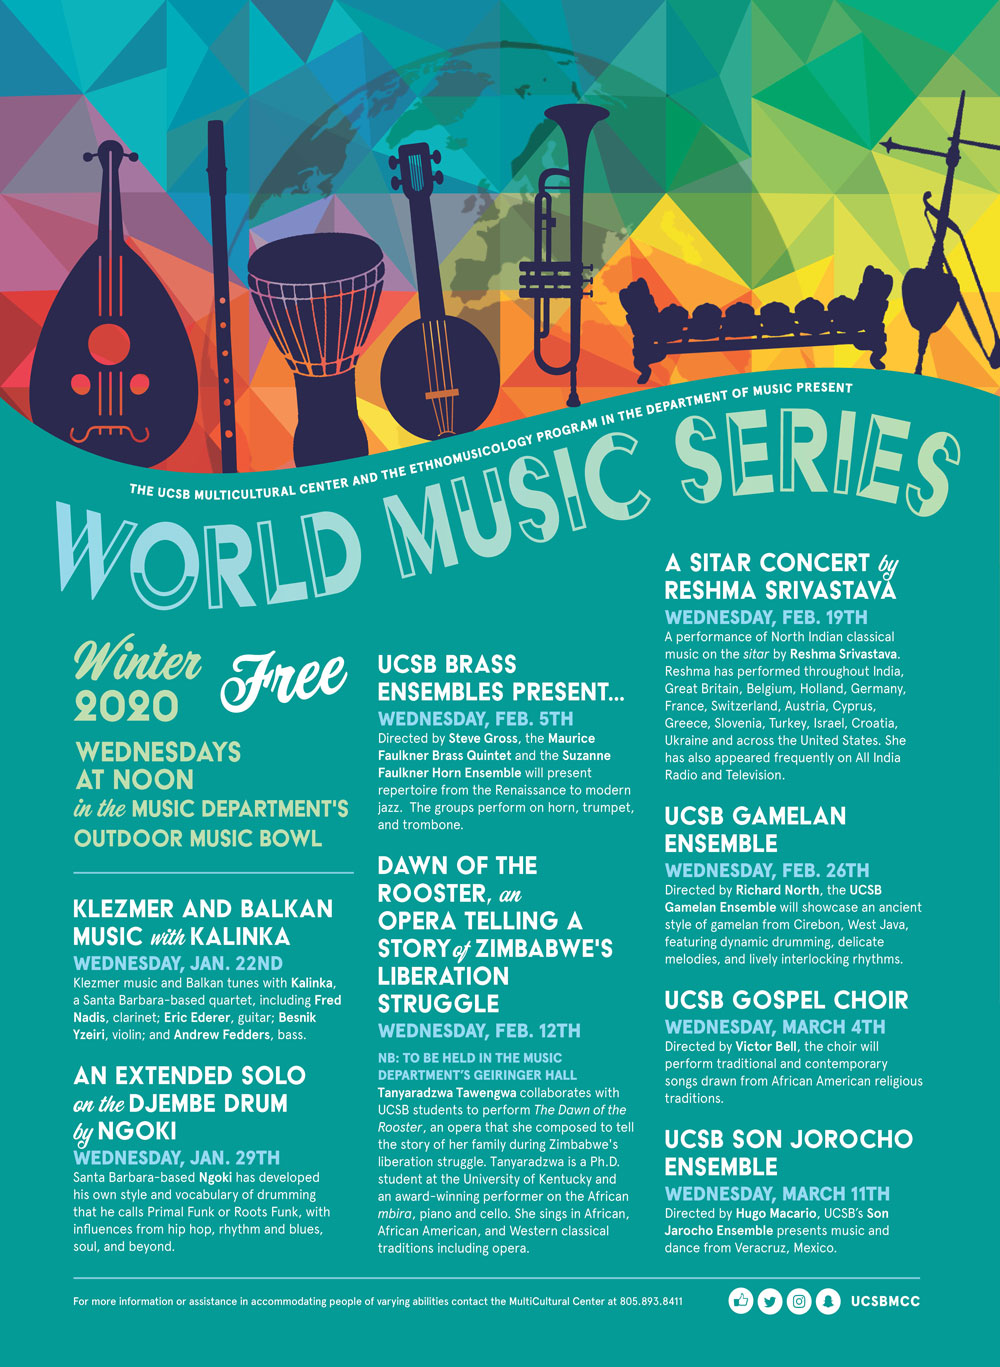 mcc ucsb world music series